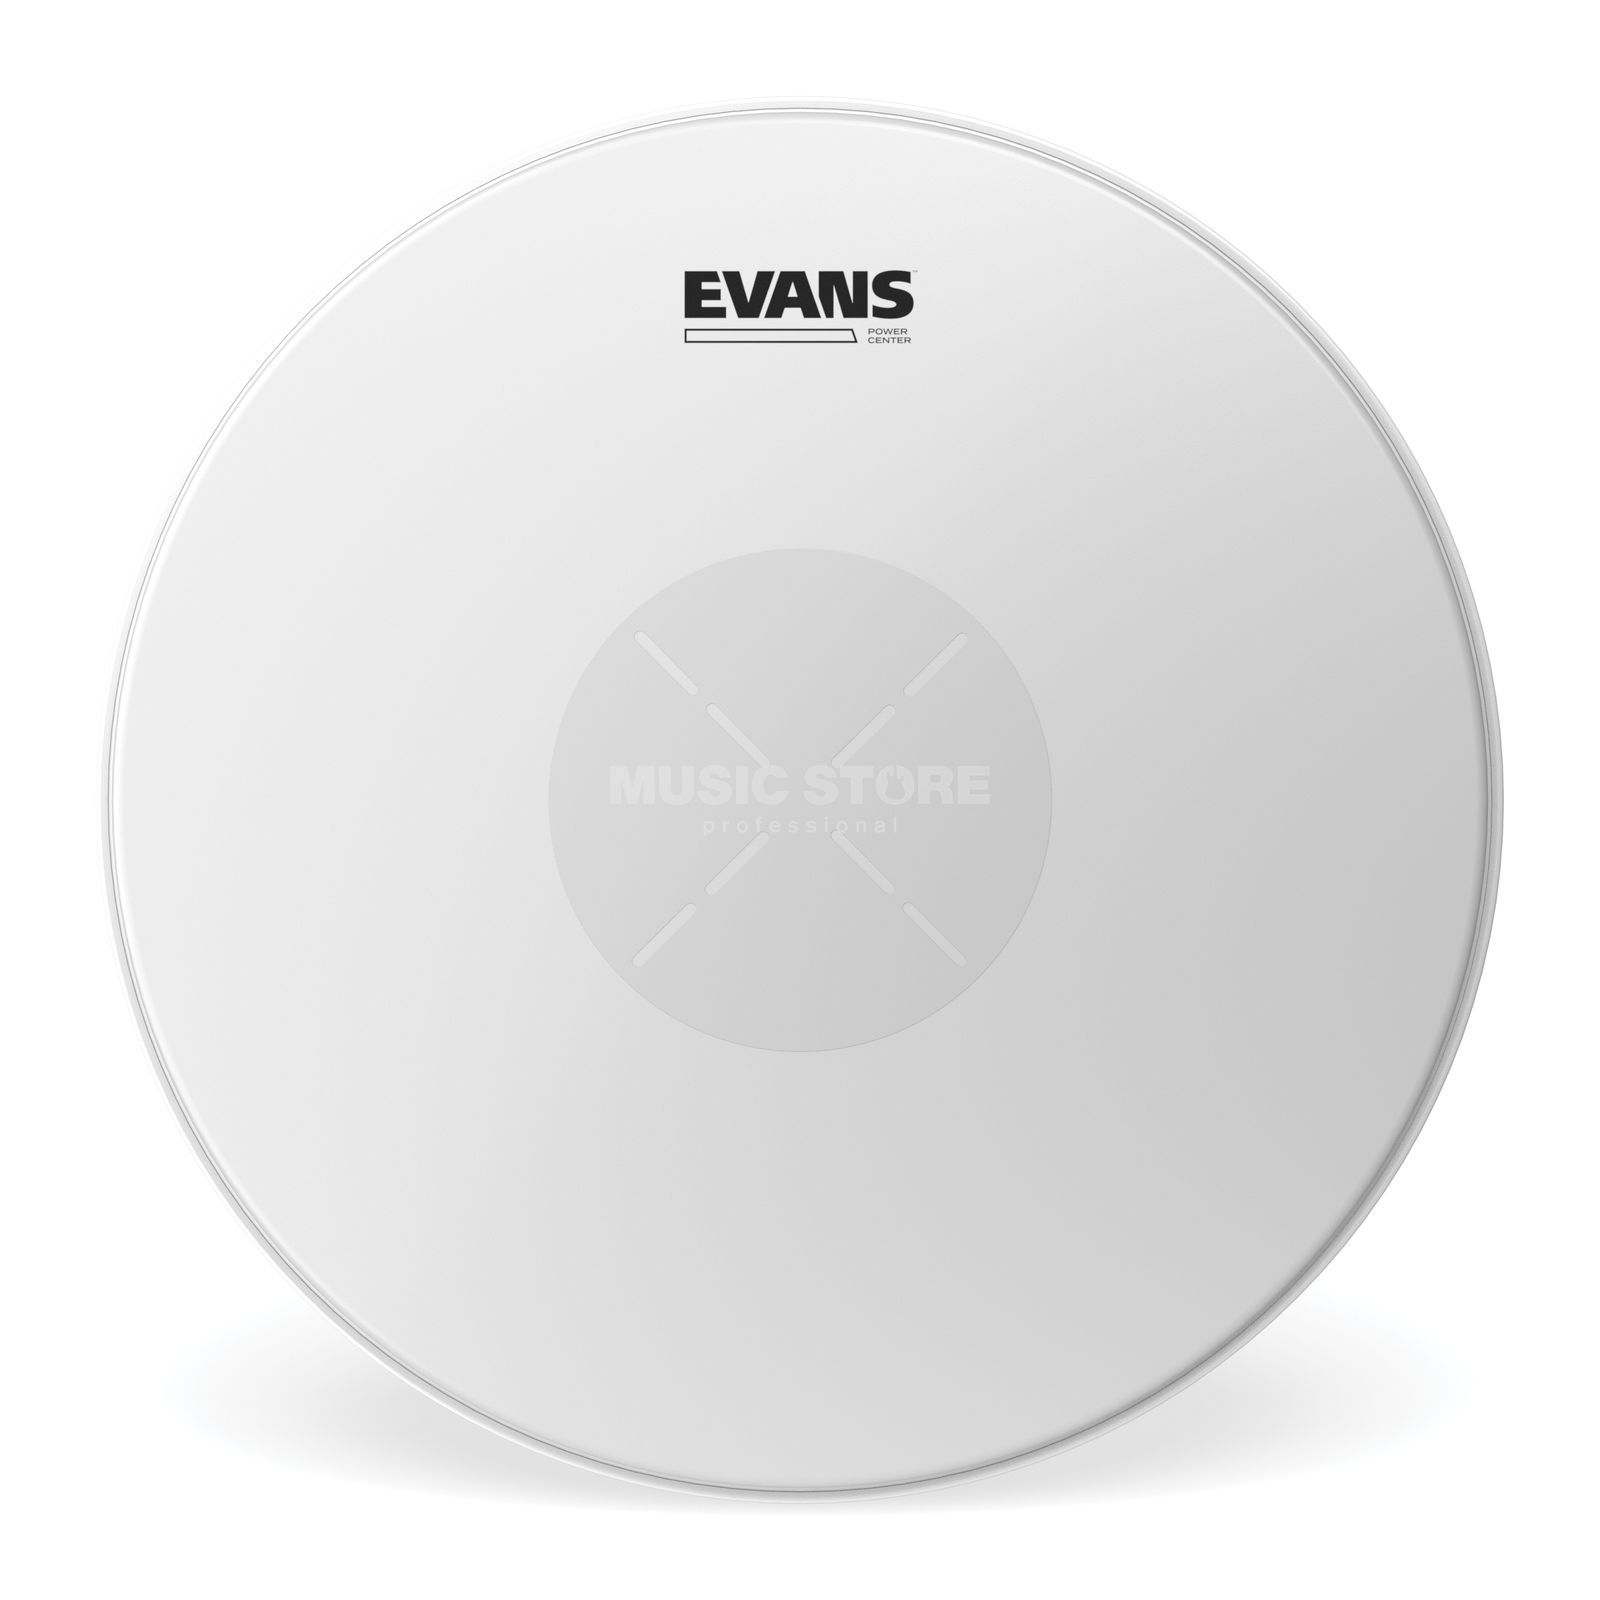 "Evans Power Center 13"", B13G1D, Snare Batter Produktbillede"